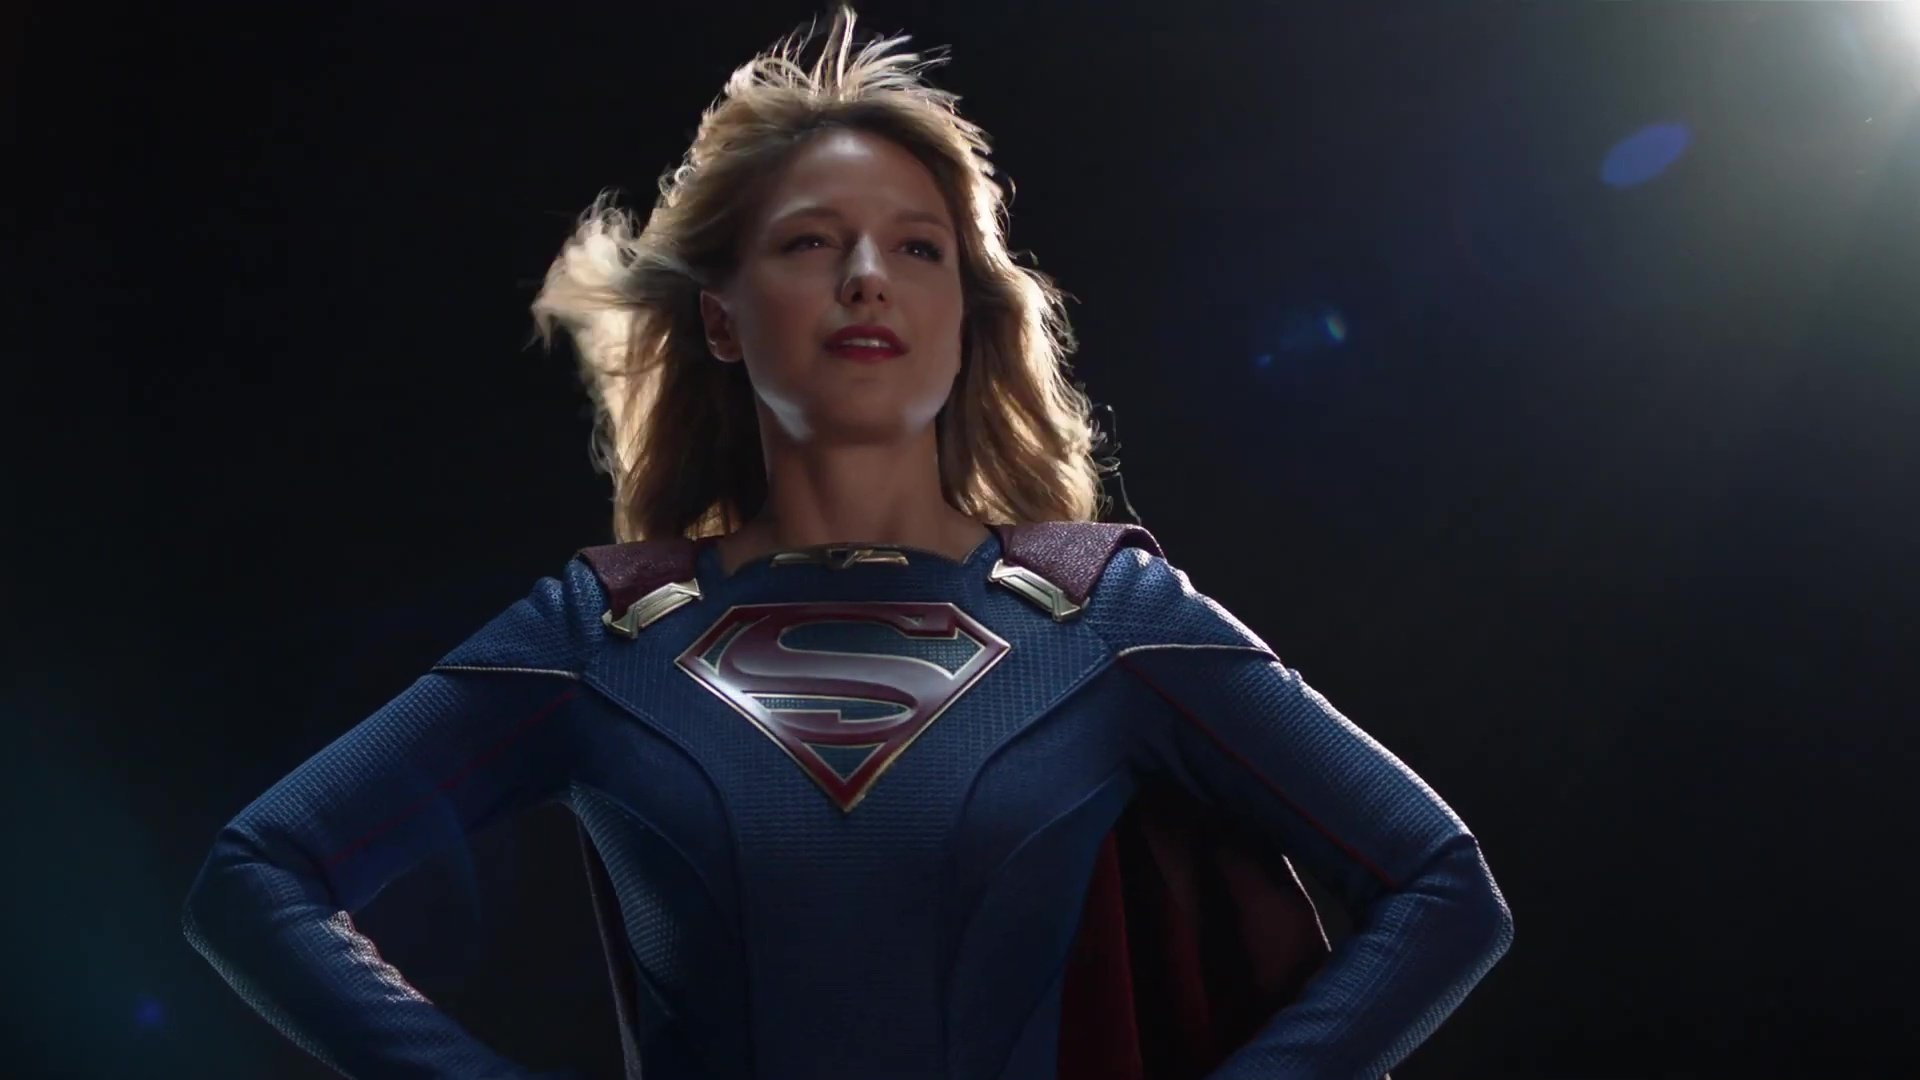 Comic-Con: Supergirl Season 5 Trailer Brings New Challenges to the Girl of Steel